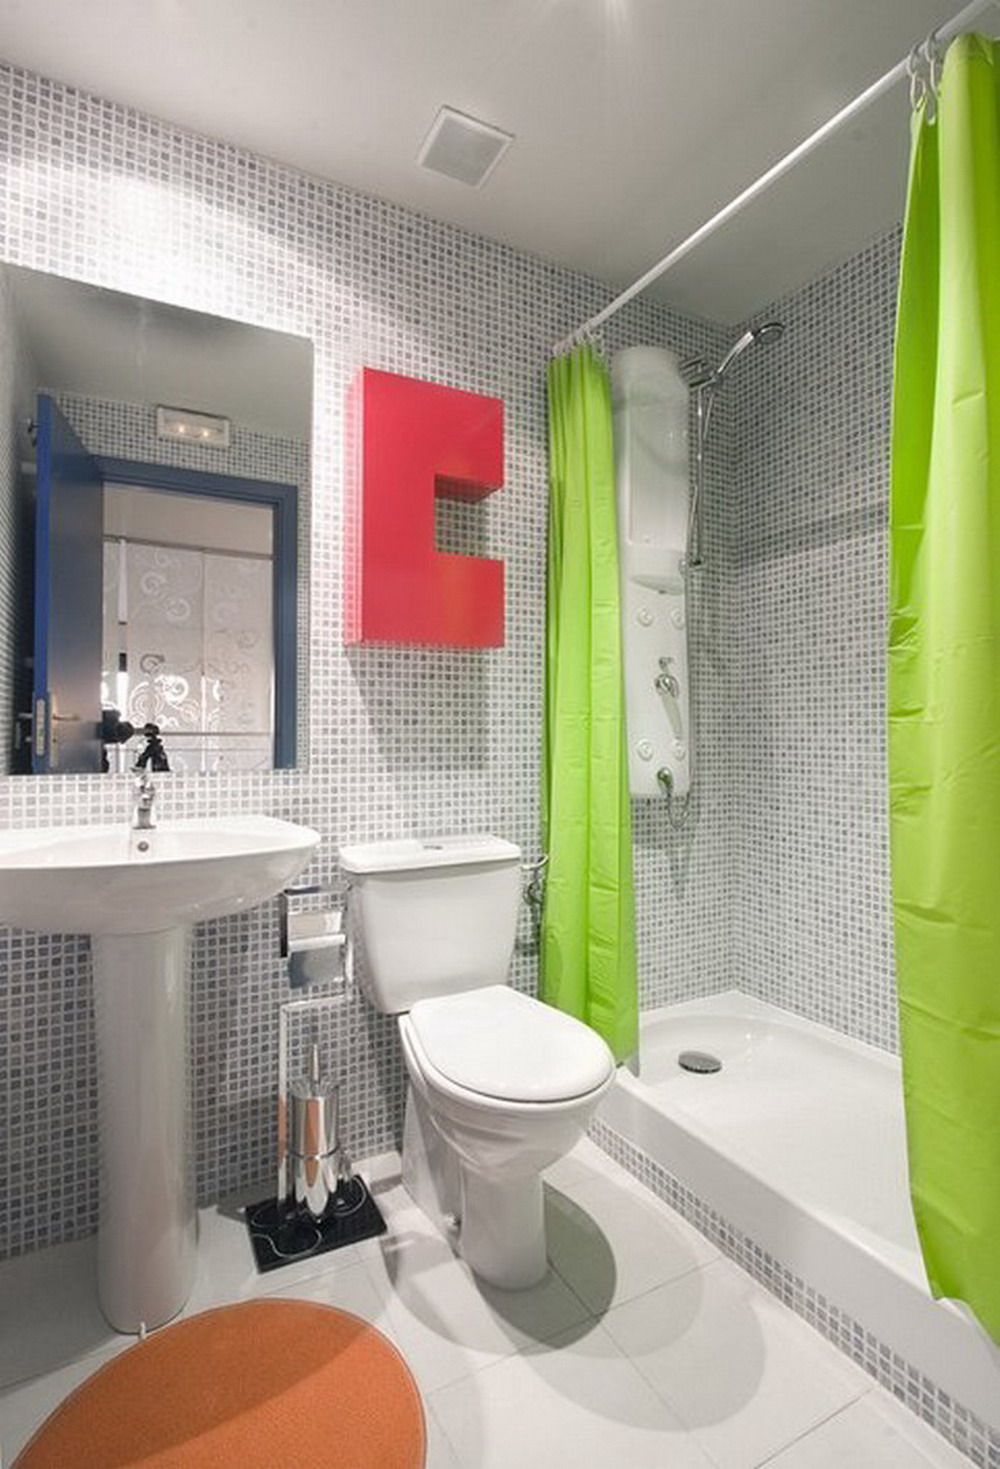 Pics photos pictures gallery of simple bathroom design - Images Of Simple Bathroom Designs 9designsemporium